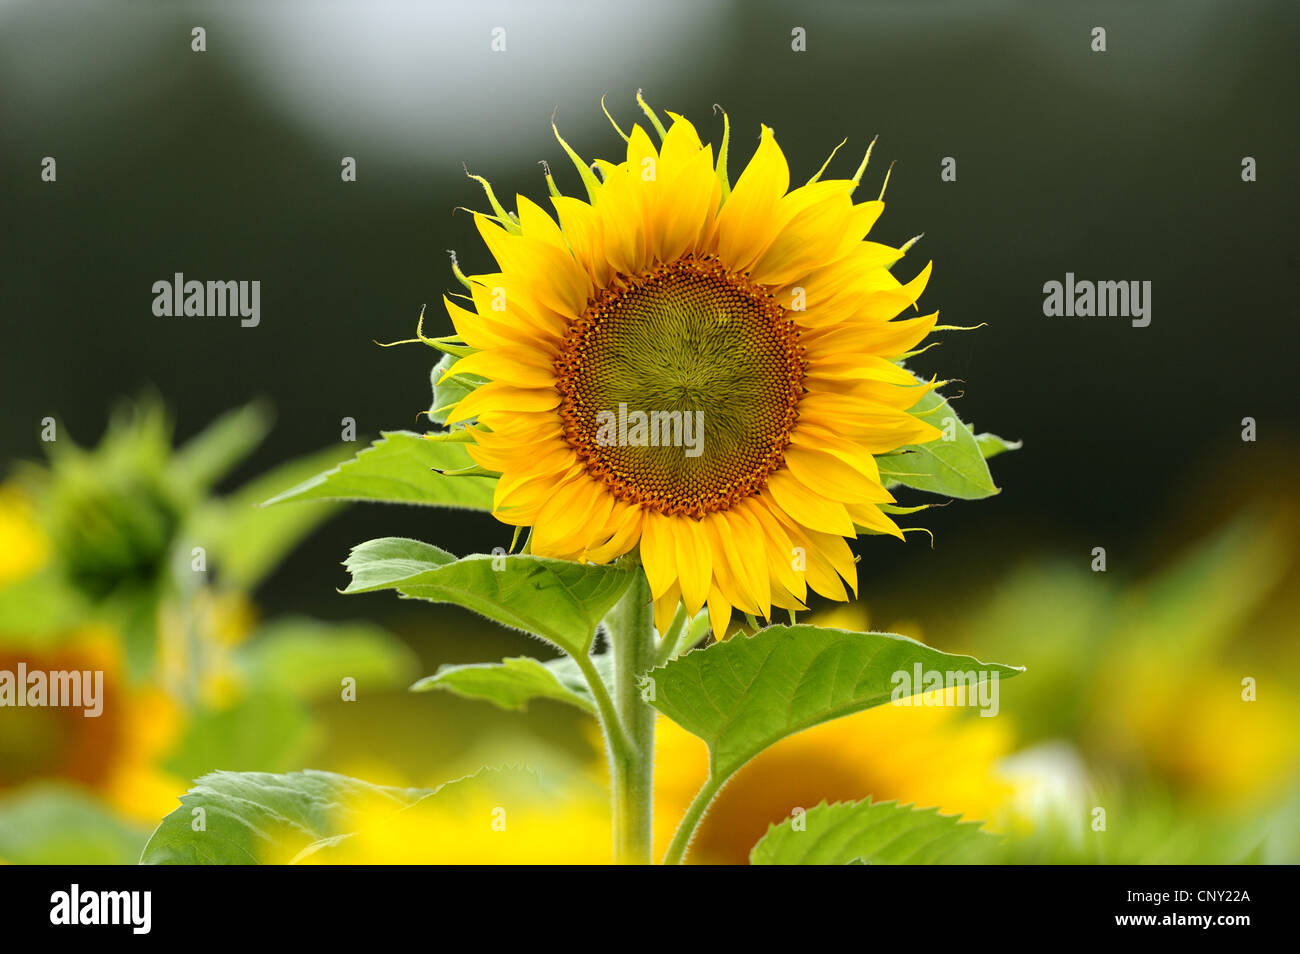 common sunflower (Helianthus annuus), blooming, Germany, Bavaria - Stock Image